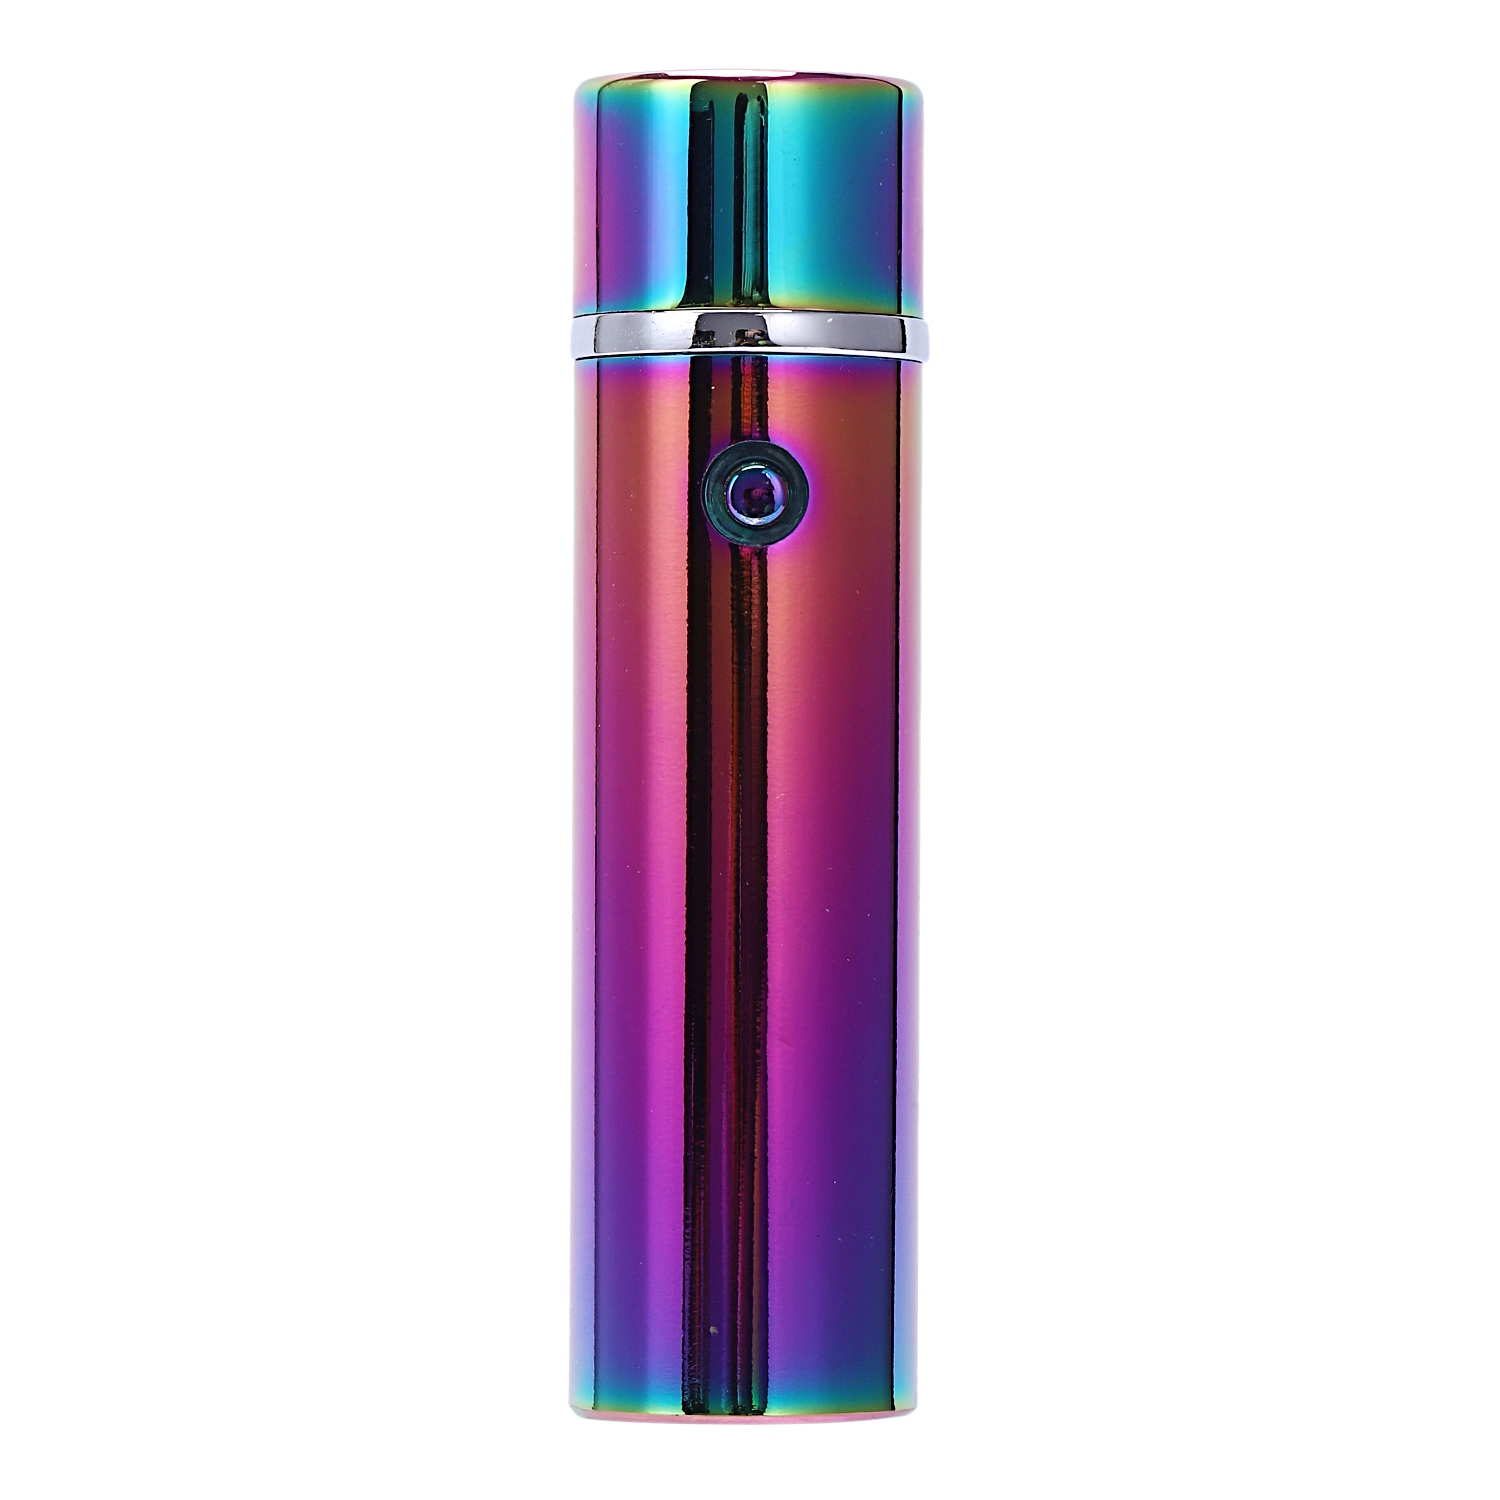 OPQ-6 Arc Lighter Plasma Electric Cigarette Lighter Metal Rechargeable Usb Lighters Six Cross Arc Pulse For Weed Tobacco image